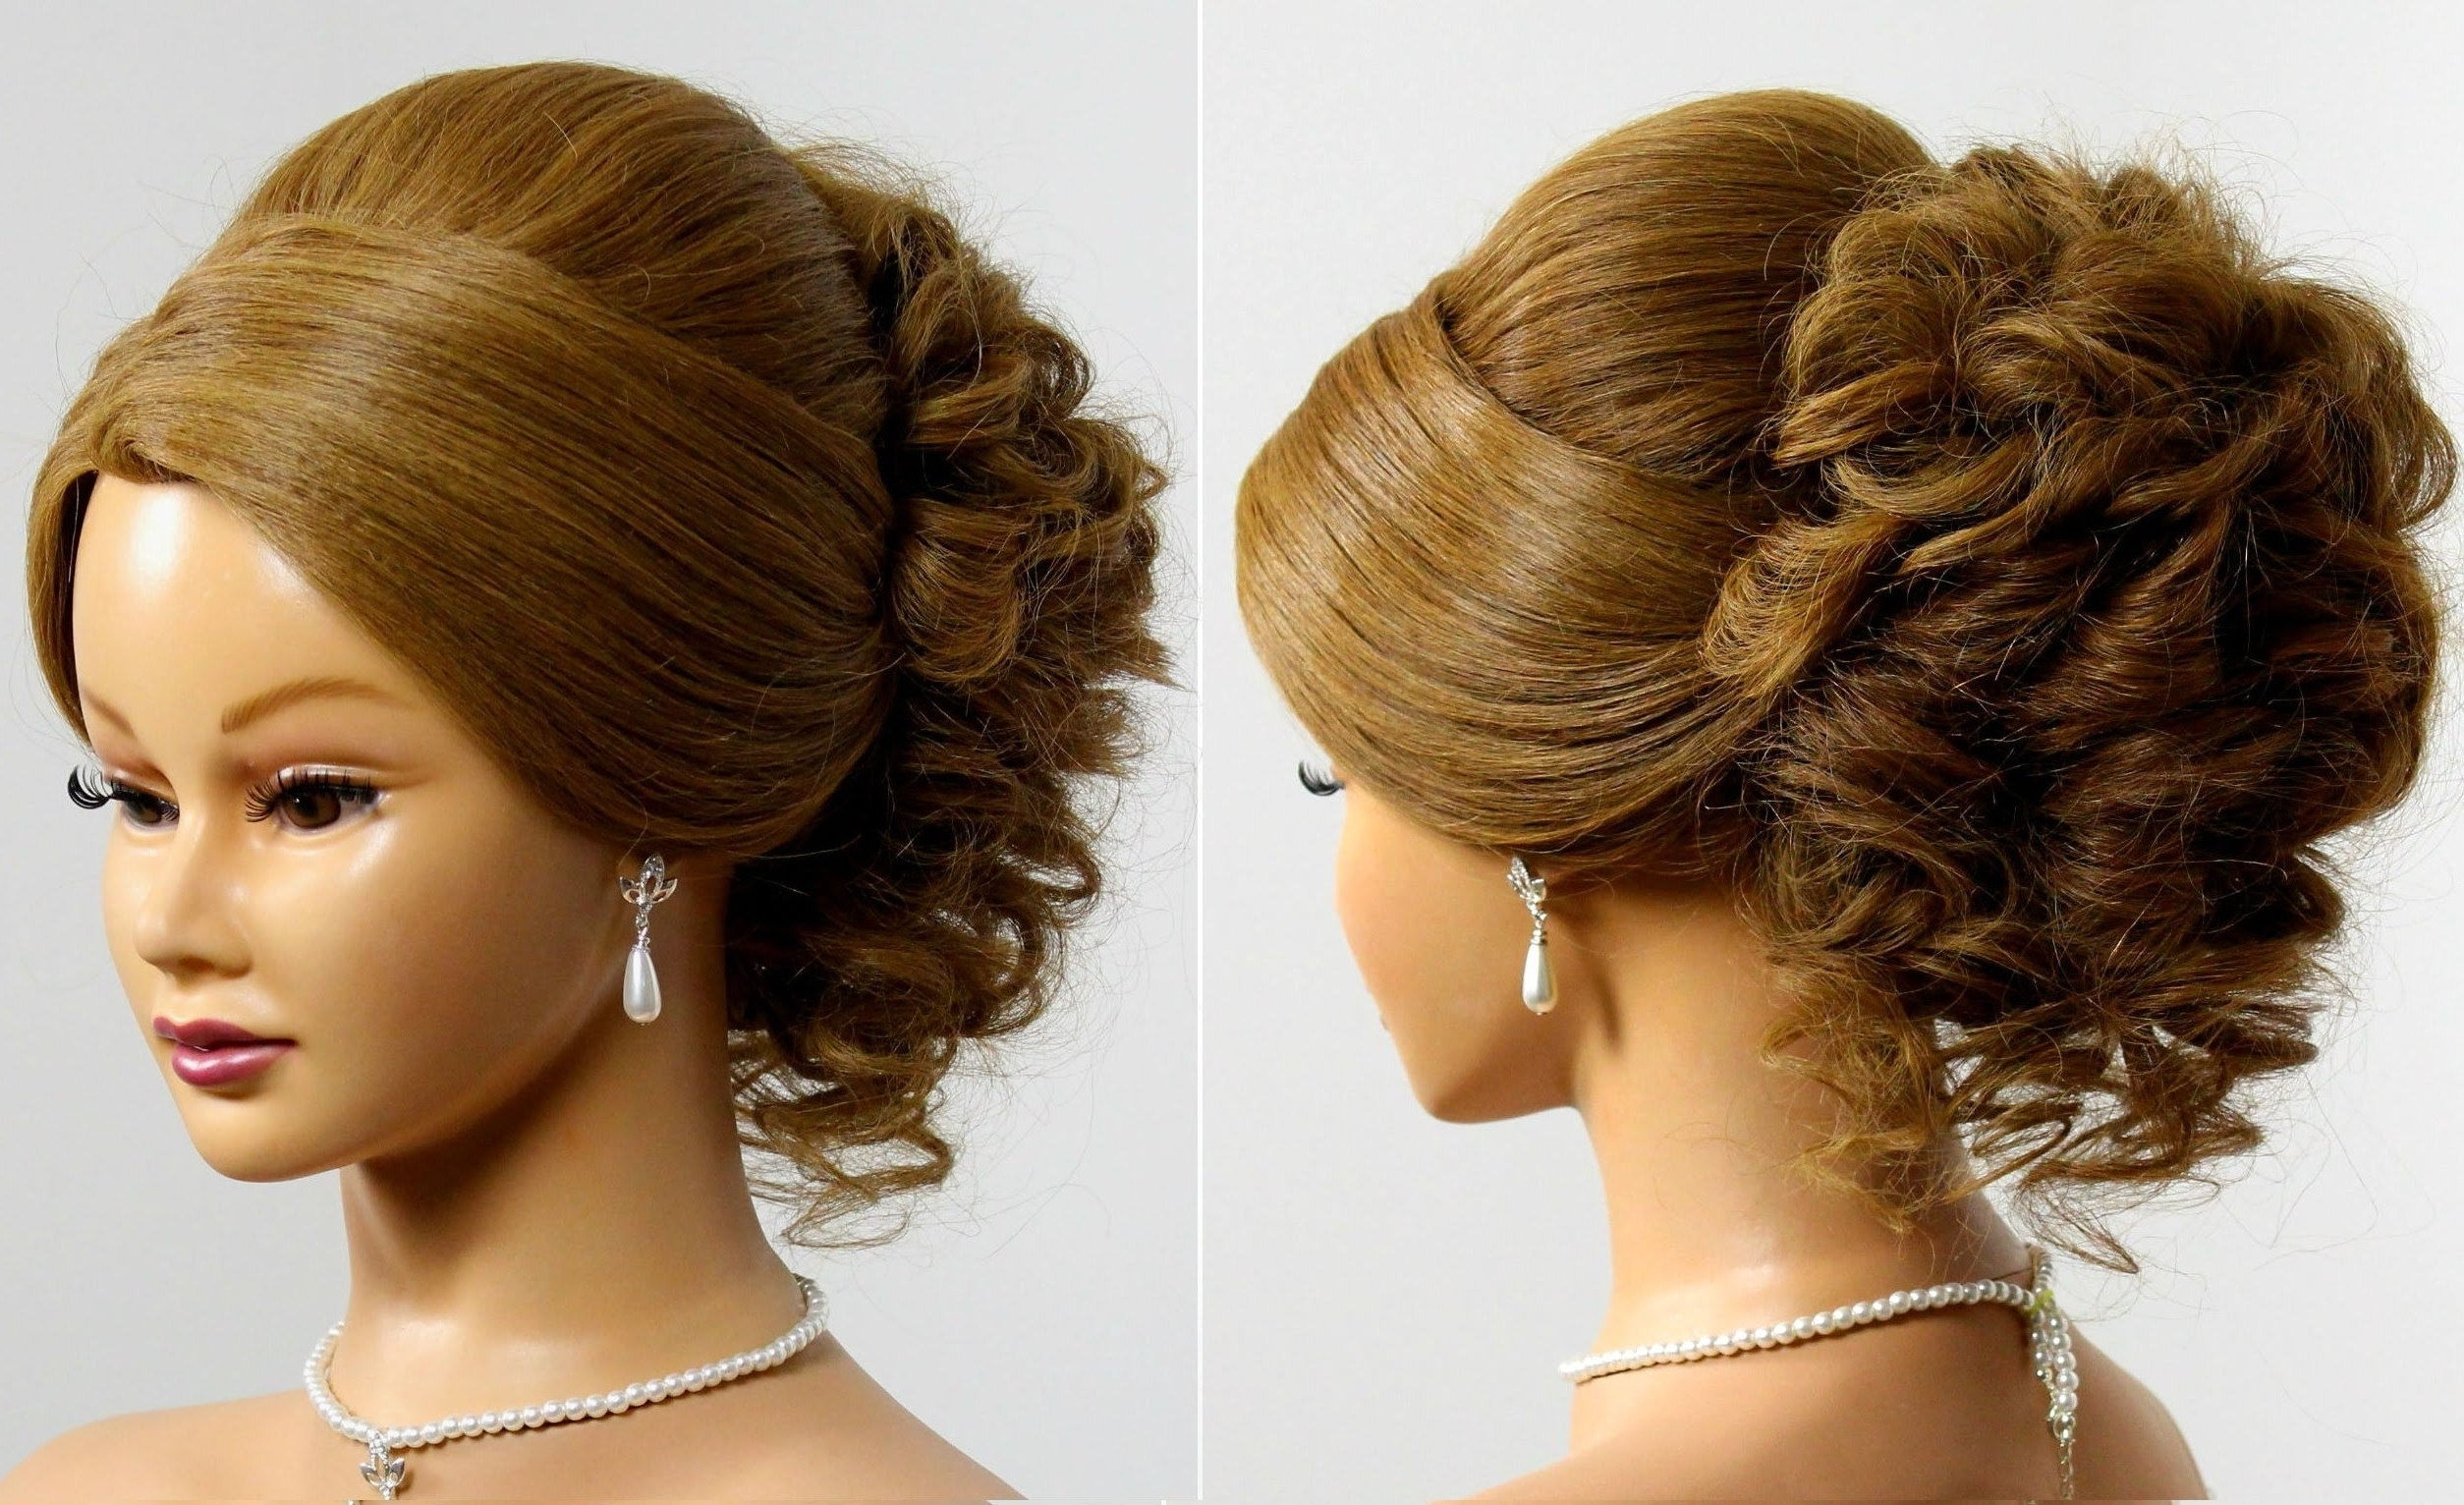 Fancy Updo Hairstyles For Long Hair Updo Hairstyles For Medium Hair In Fancy Updo Hairstyles For Long Hair (View 3 of 15)